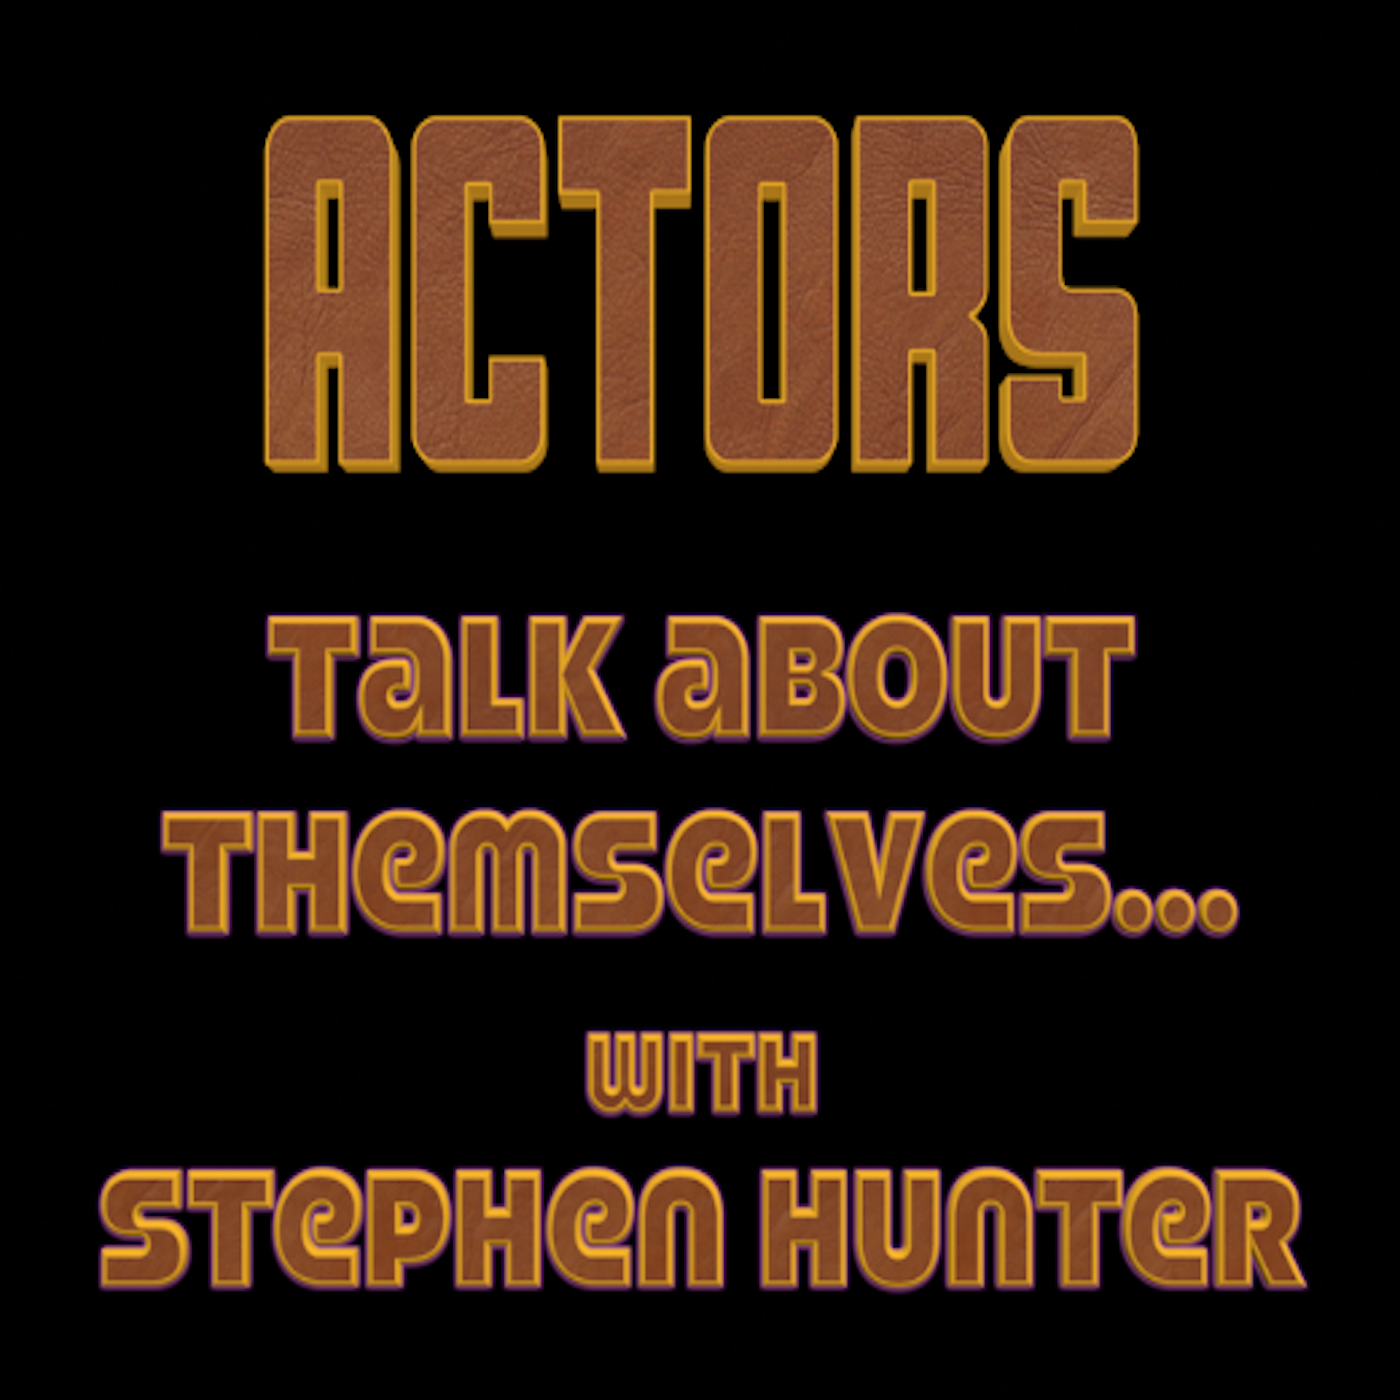 Actors Talk About Themselves - with Stephen Hunter